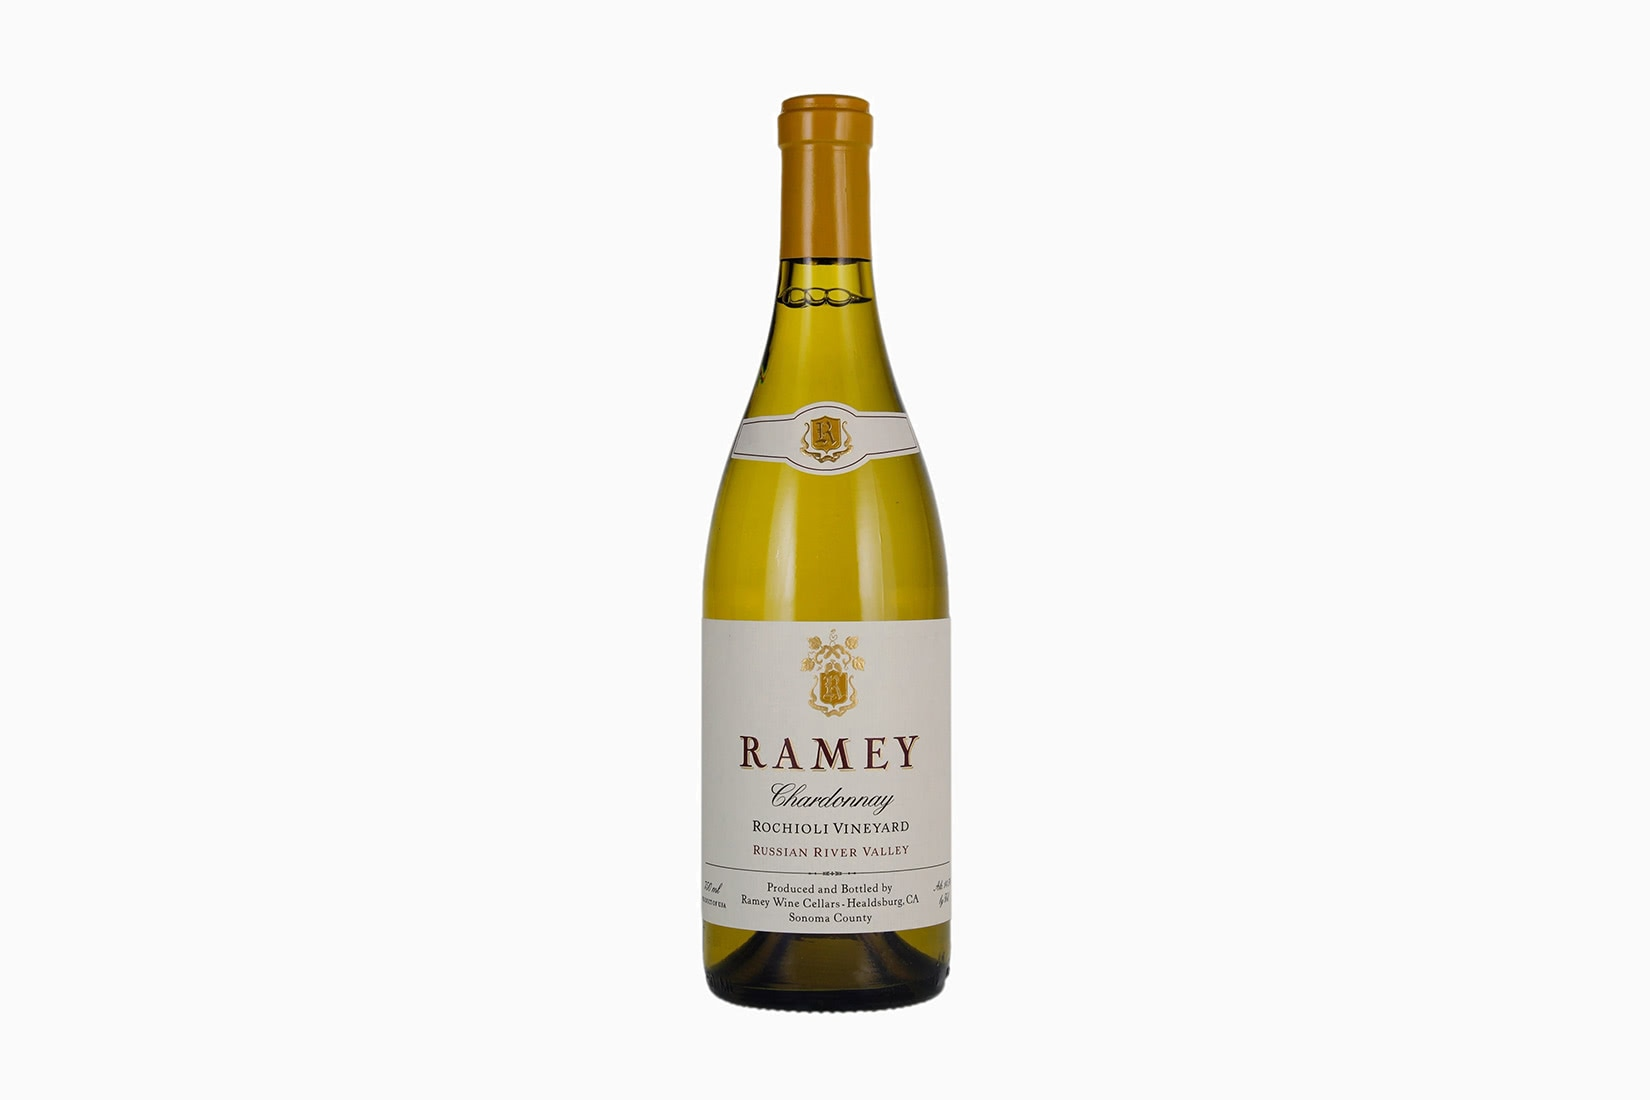 best wine ramey rochioli vineyard chardonnay - Luxe Digital